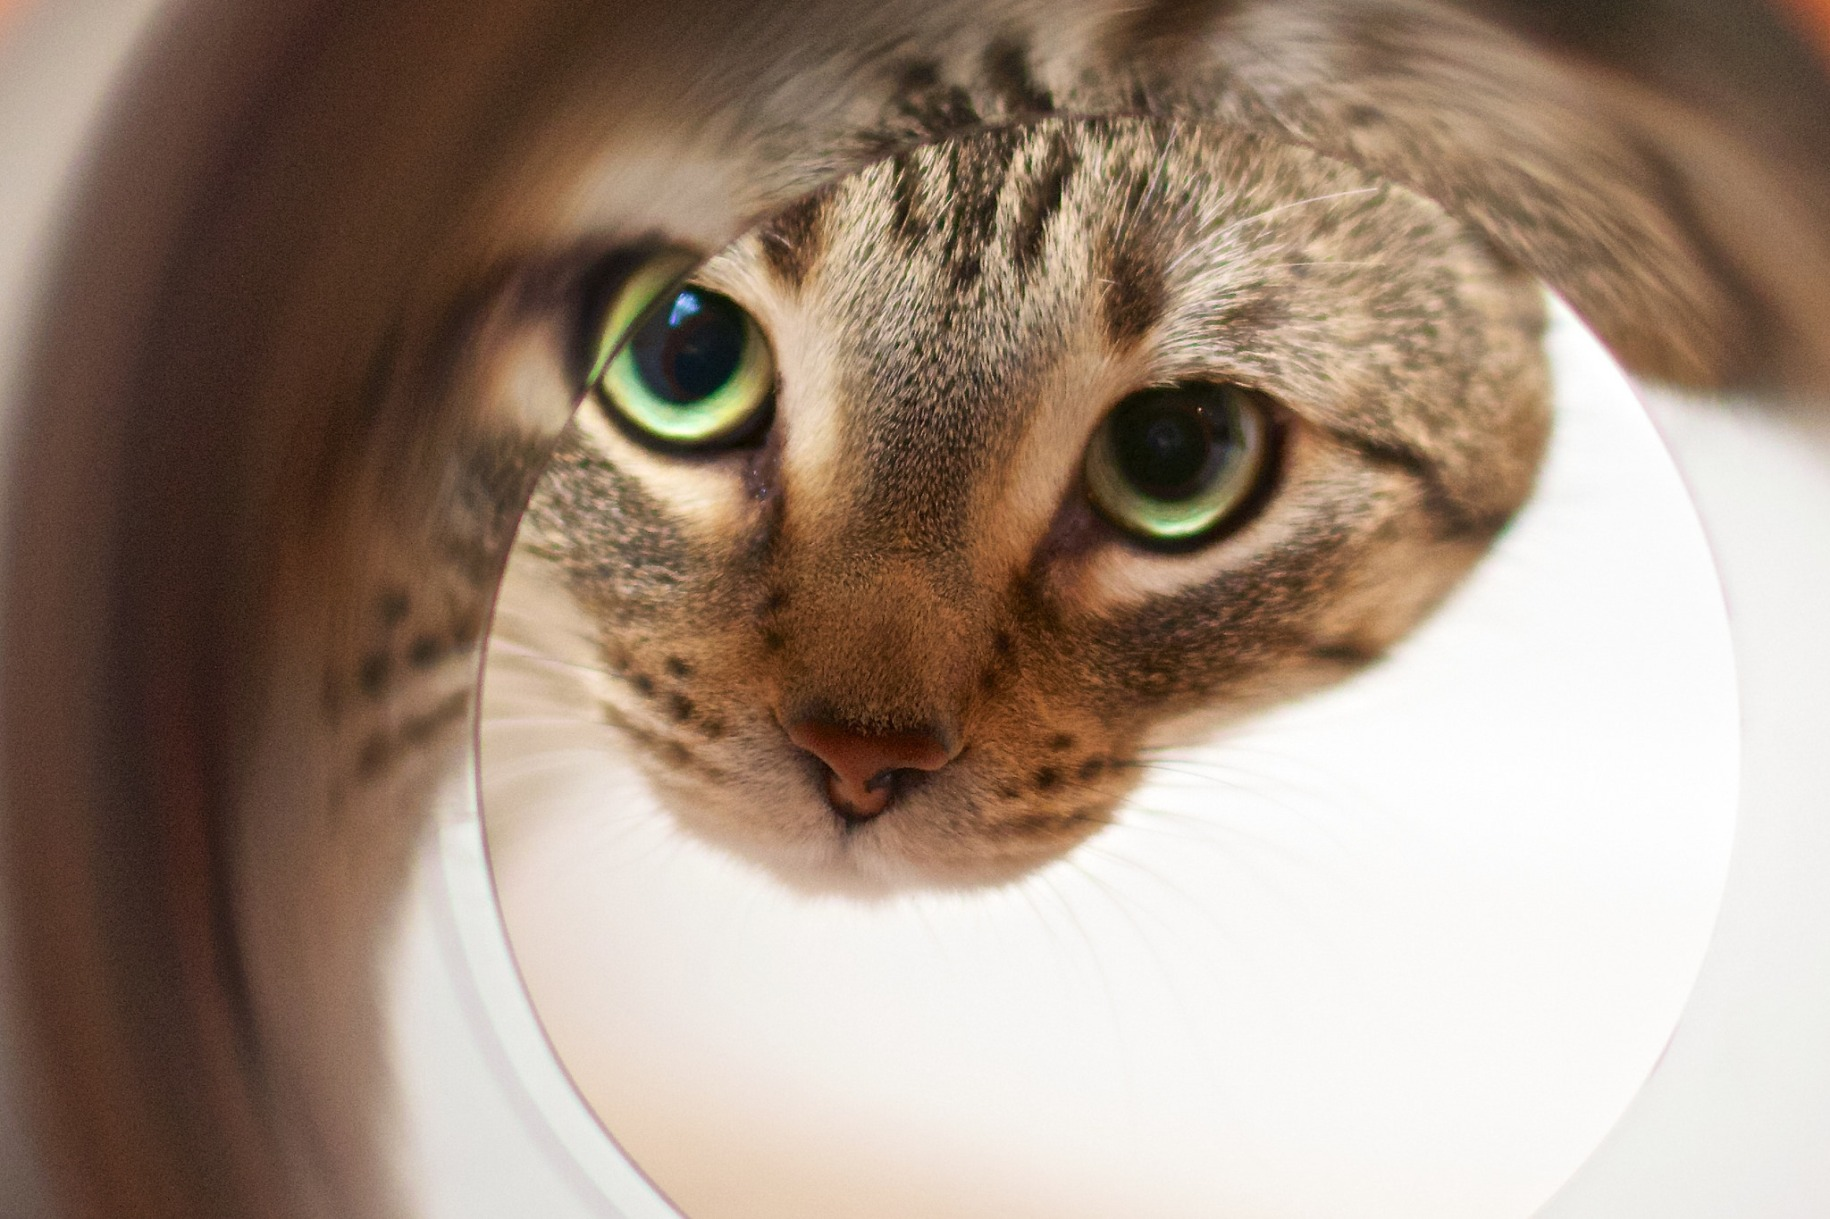 a cat staring down a tube